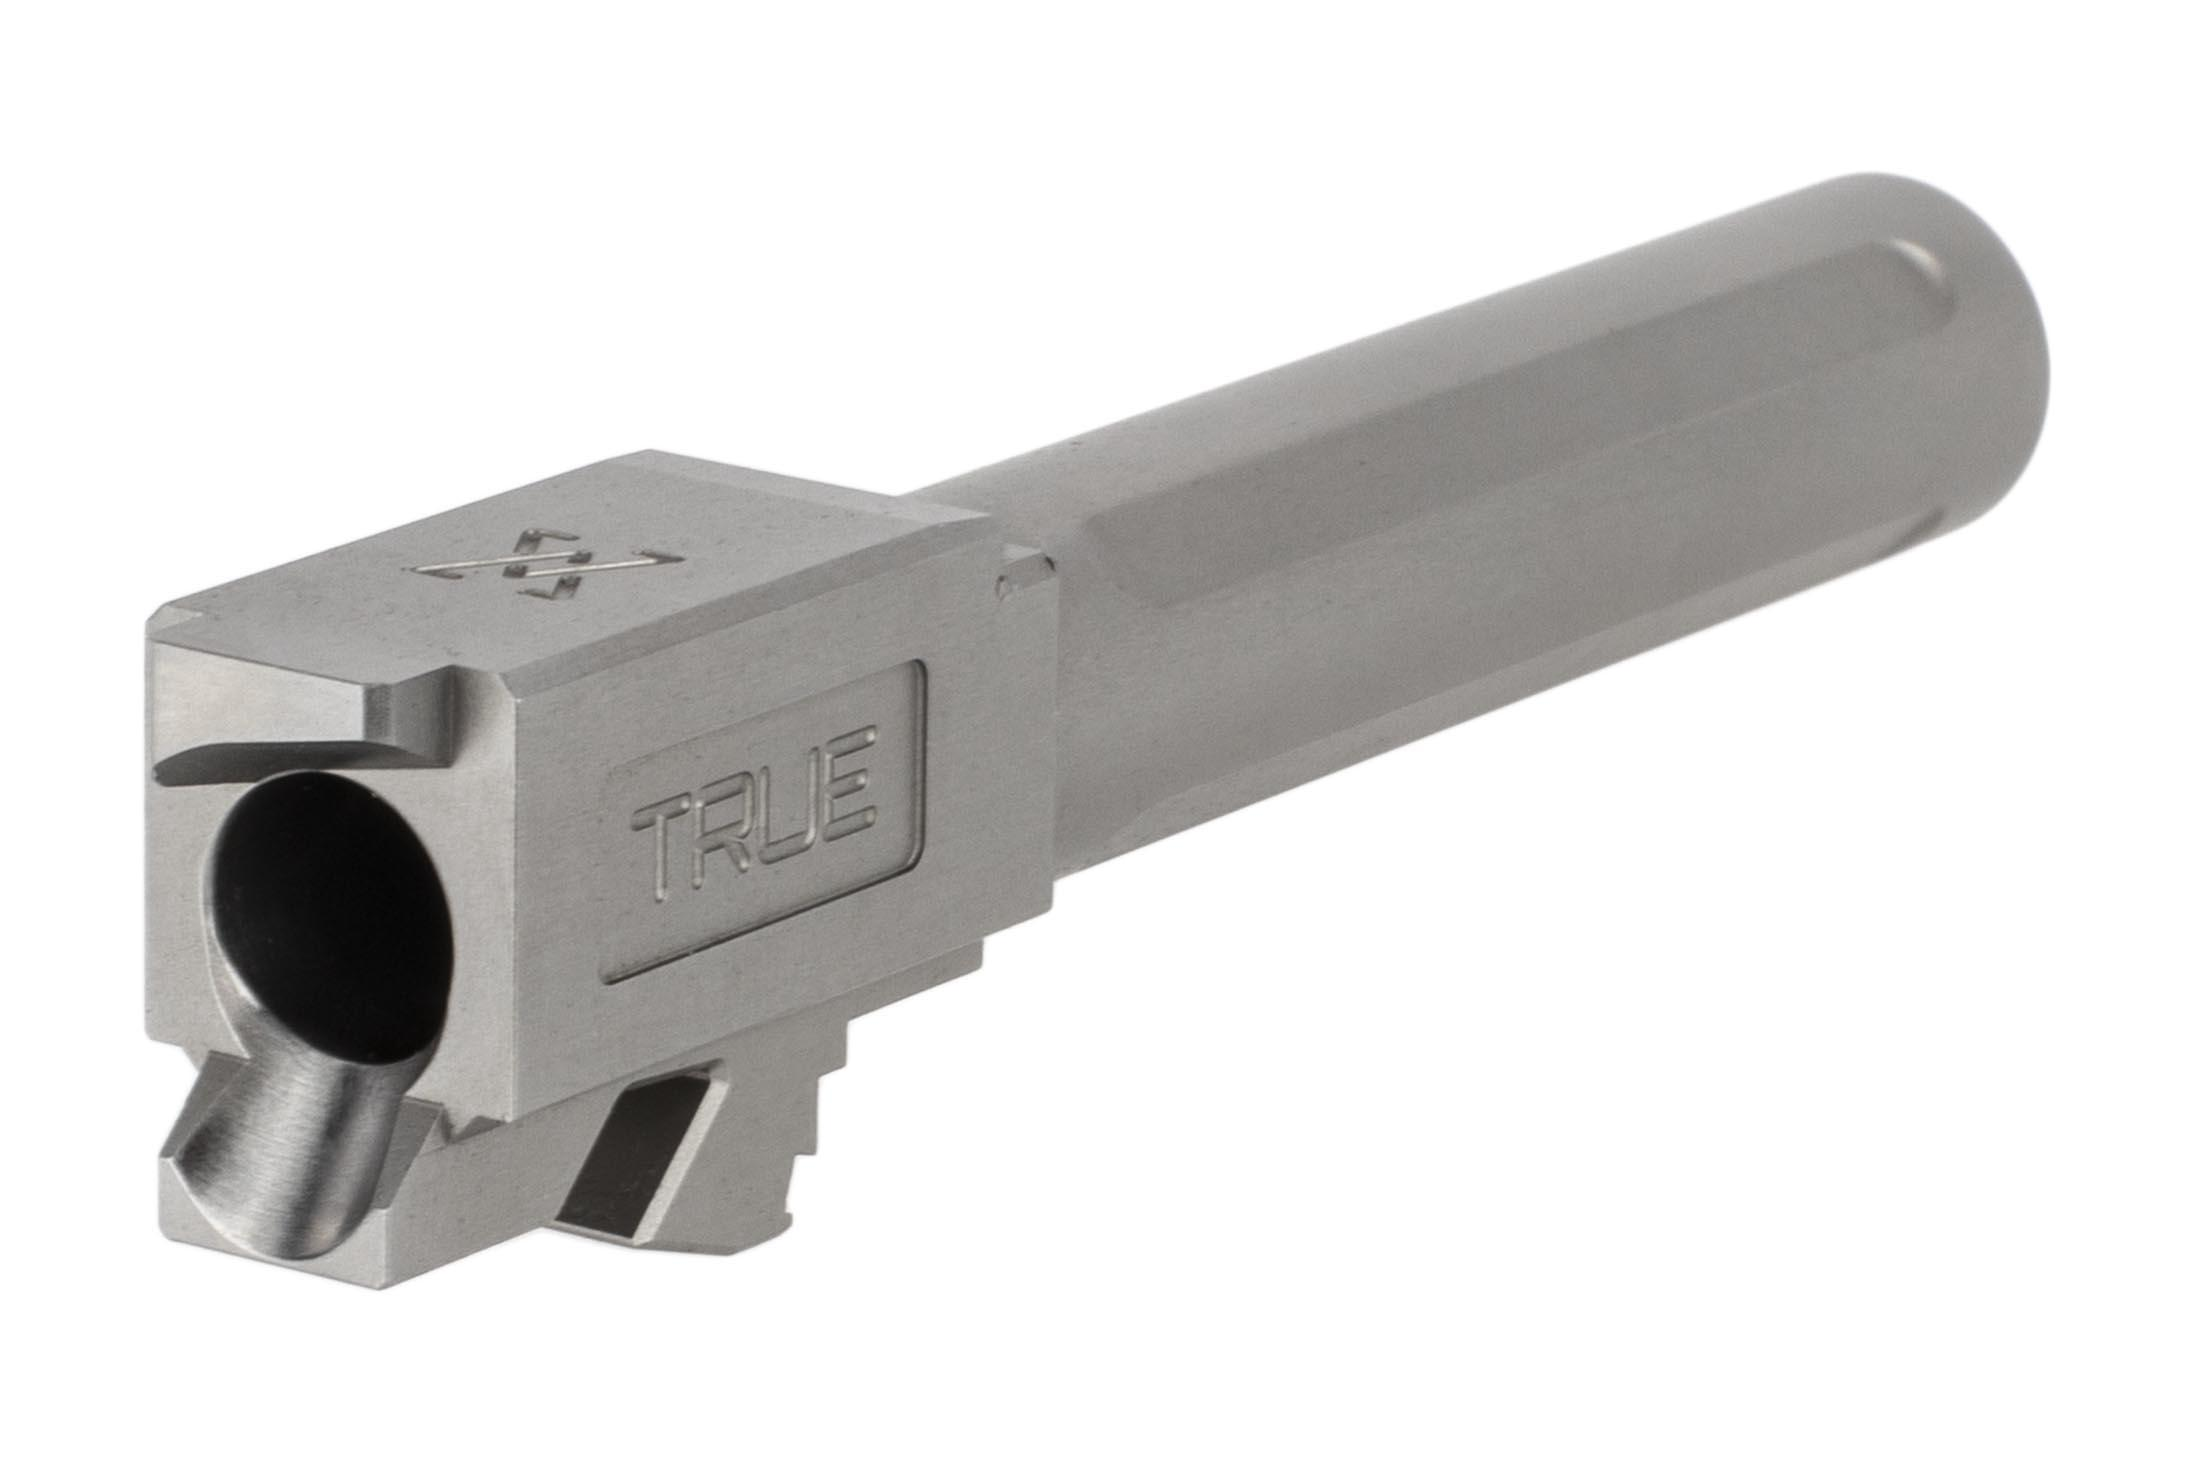 TRUE Precision Glock 19 Compatible 9mm Non-Threaded Barrel - Stainless